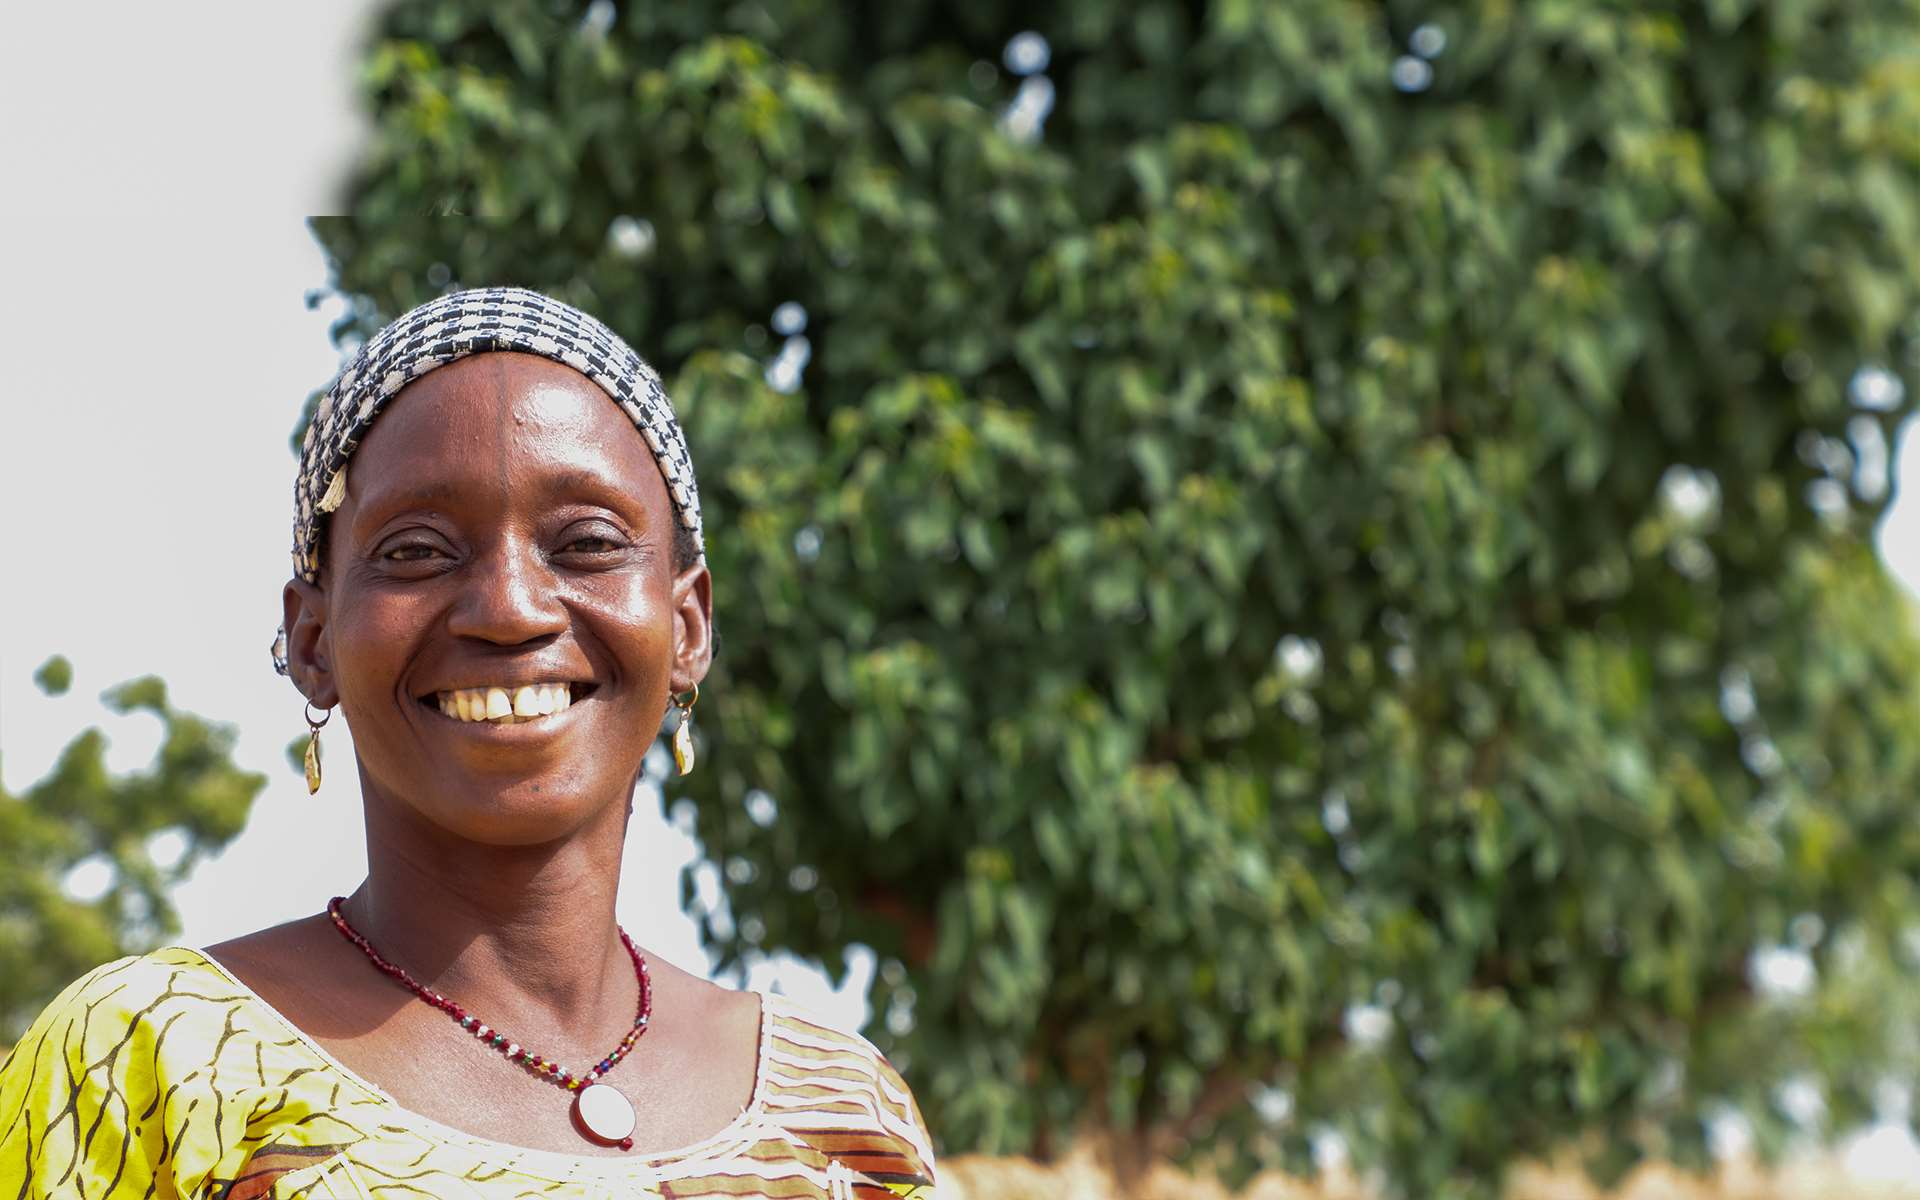 Djamako, a woman on Tree Aid's She Grows project, smiling in front of trees.